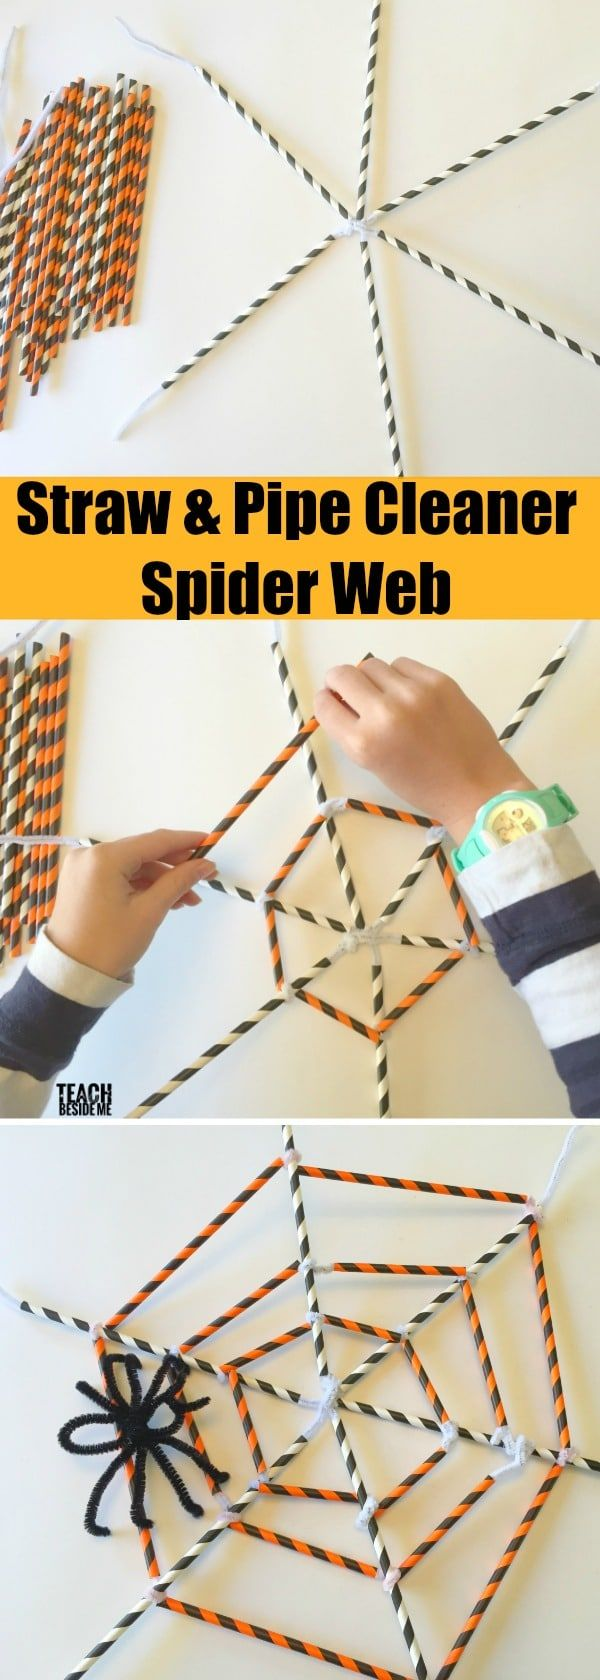 Build a Straw and Pipe Cleaner Spider Web this Halloween! This is a perfect Halloween Craft or a great Halloween STEM challenge, too!   via @karyntripp